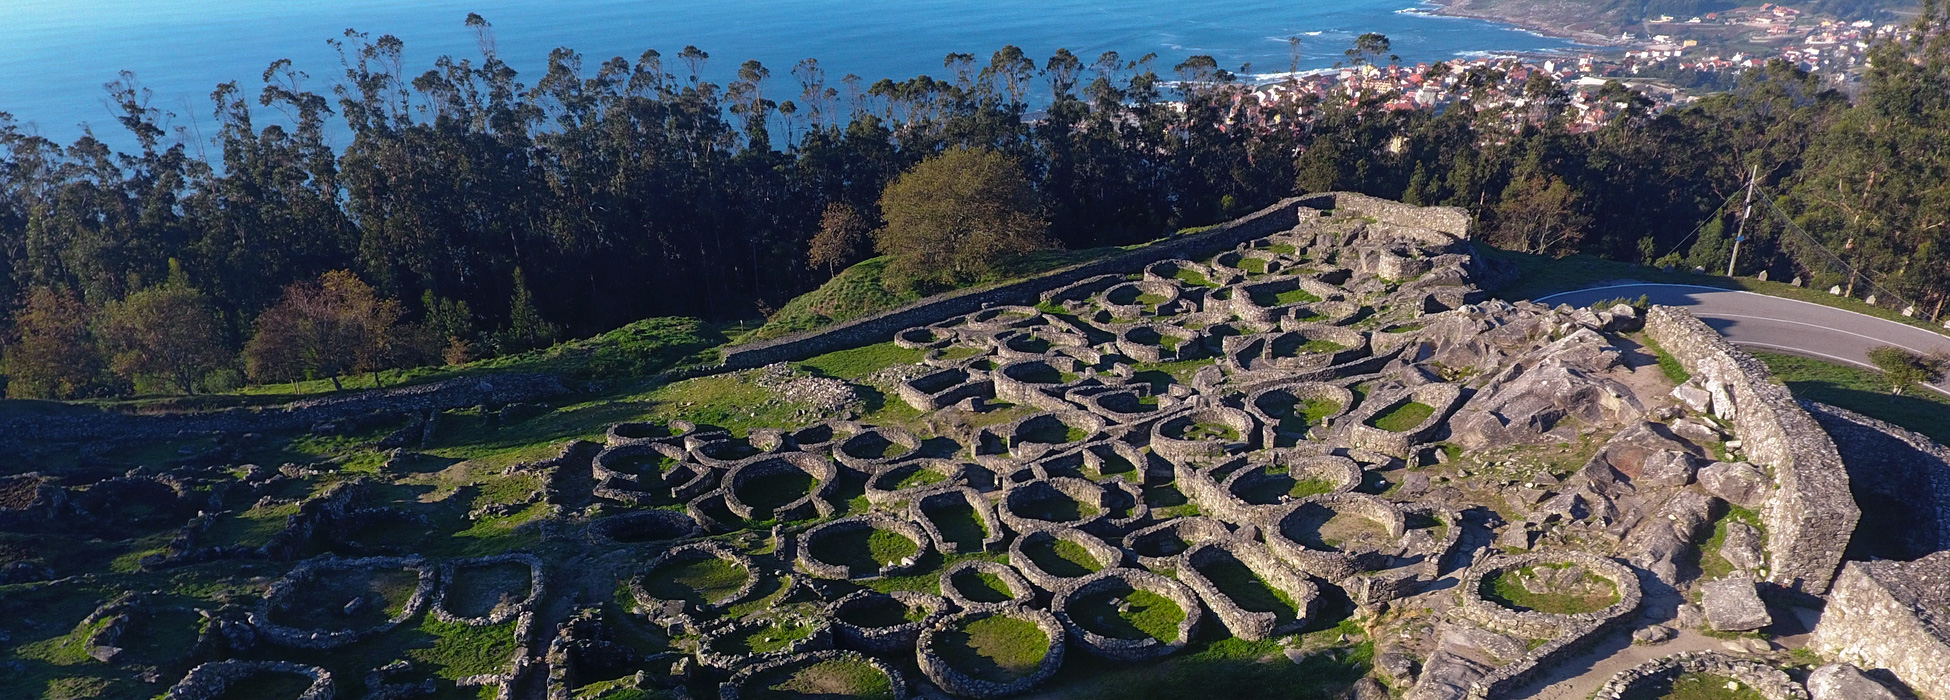 Archaeological wonders in legendary landscapes